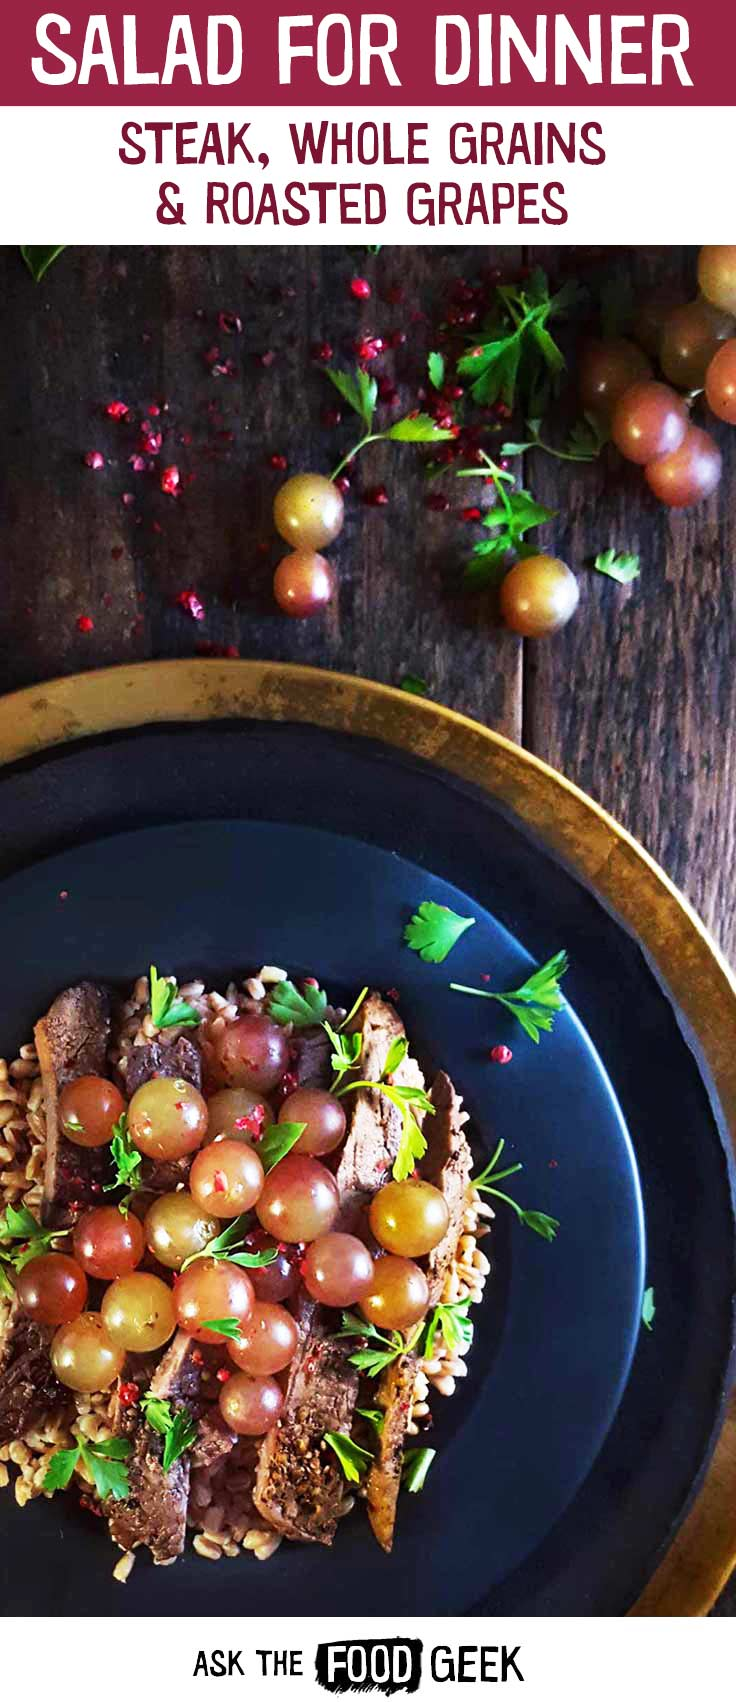 Steak Salad for dinner recipe: Steak salad with farro and roasted grapes.